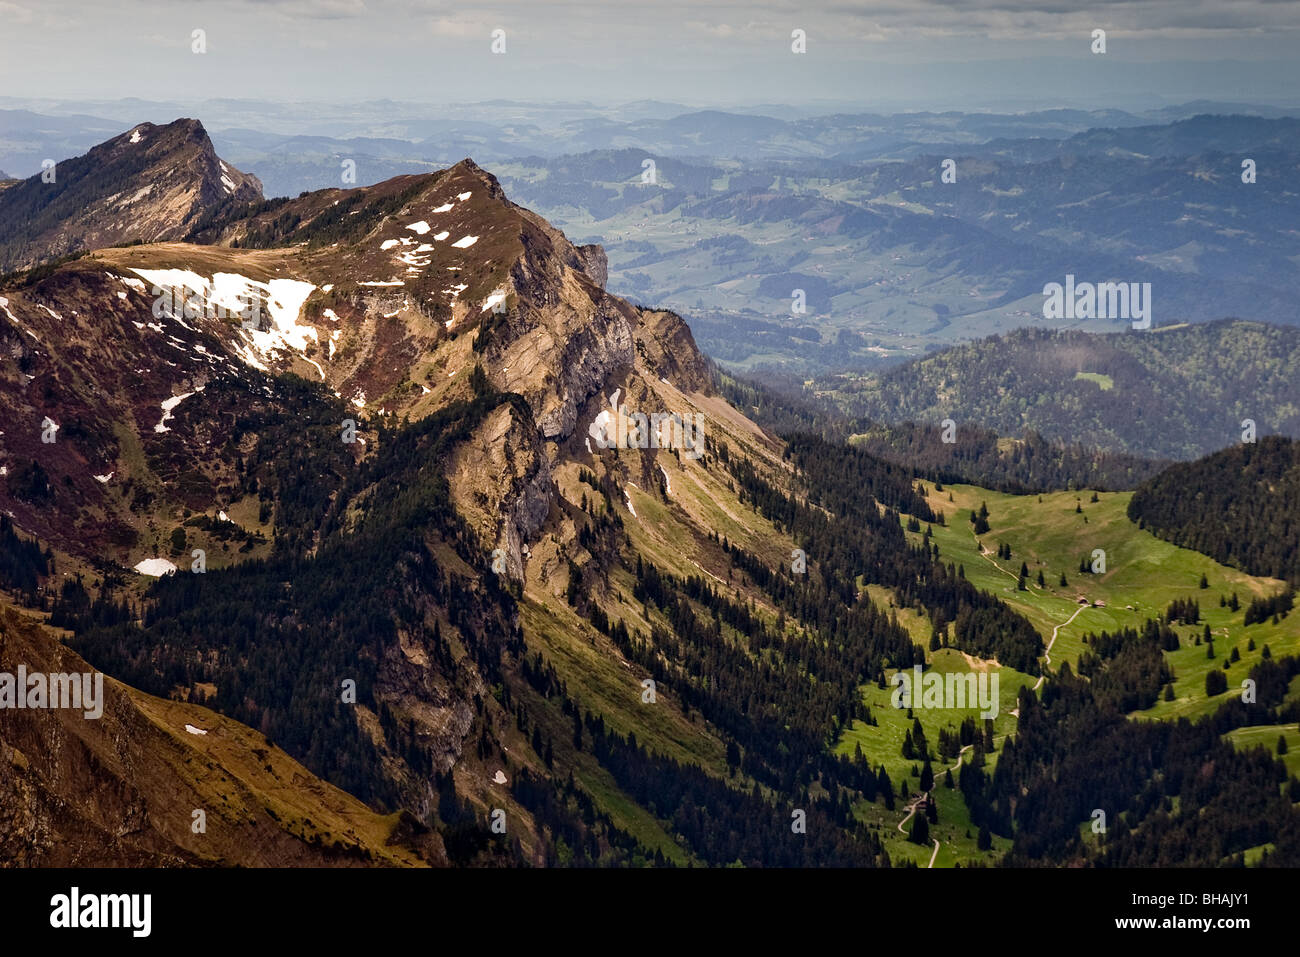 Mount Pilatus Switzerland Stock Photo